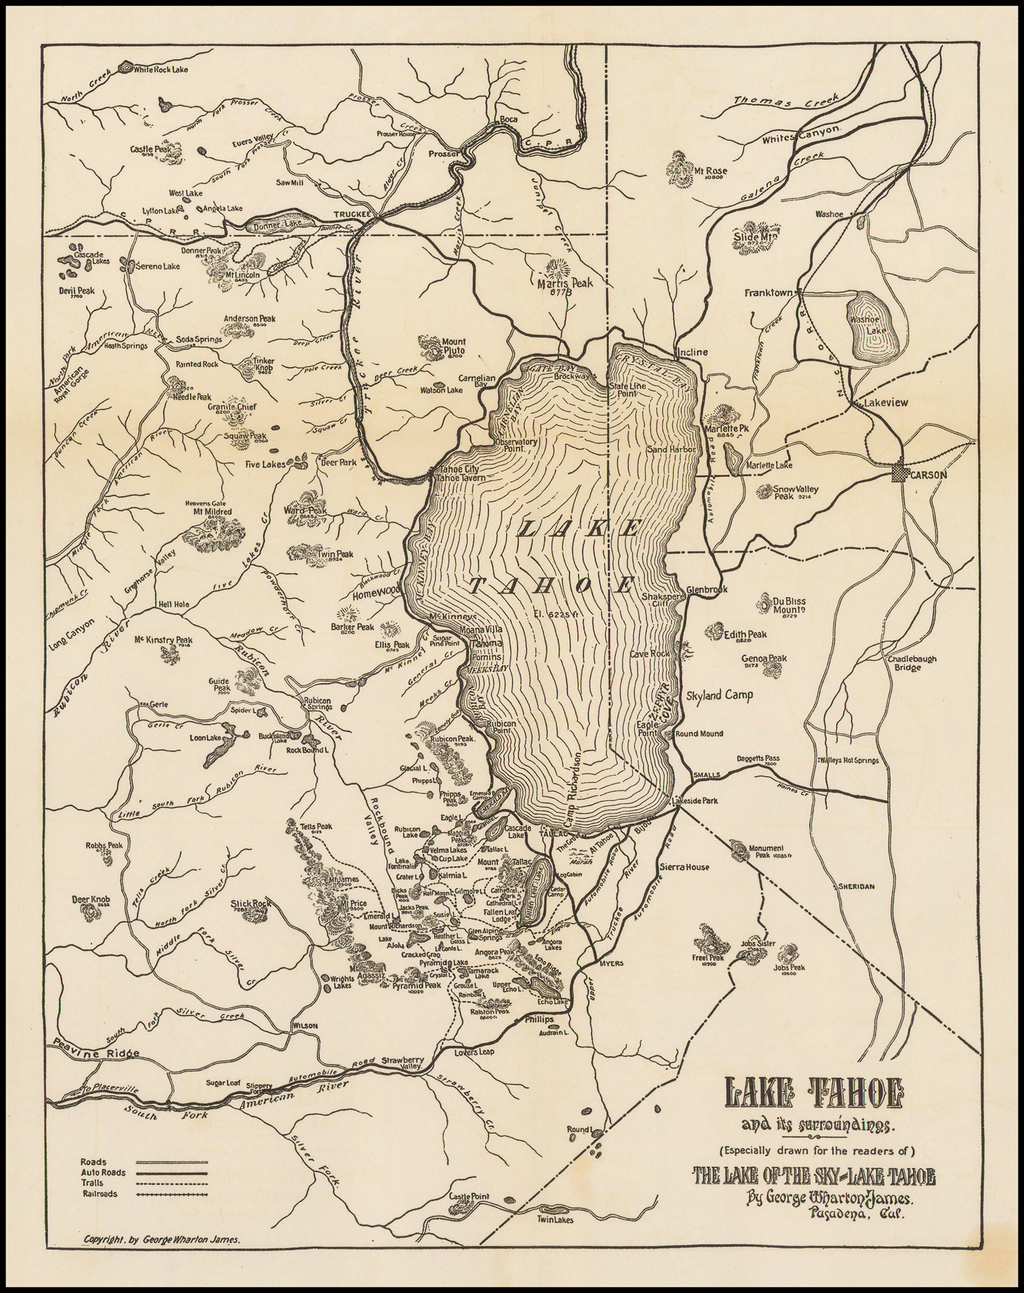 Lake Tahoe and its surroundings.  (Especially drawn for the readers of) The Lake of the Sky Lake Tahoe By George Wharton James. . . .  By George Wharton James